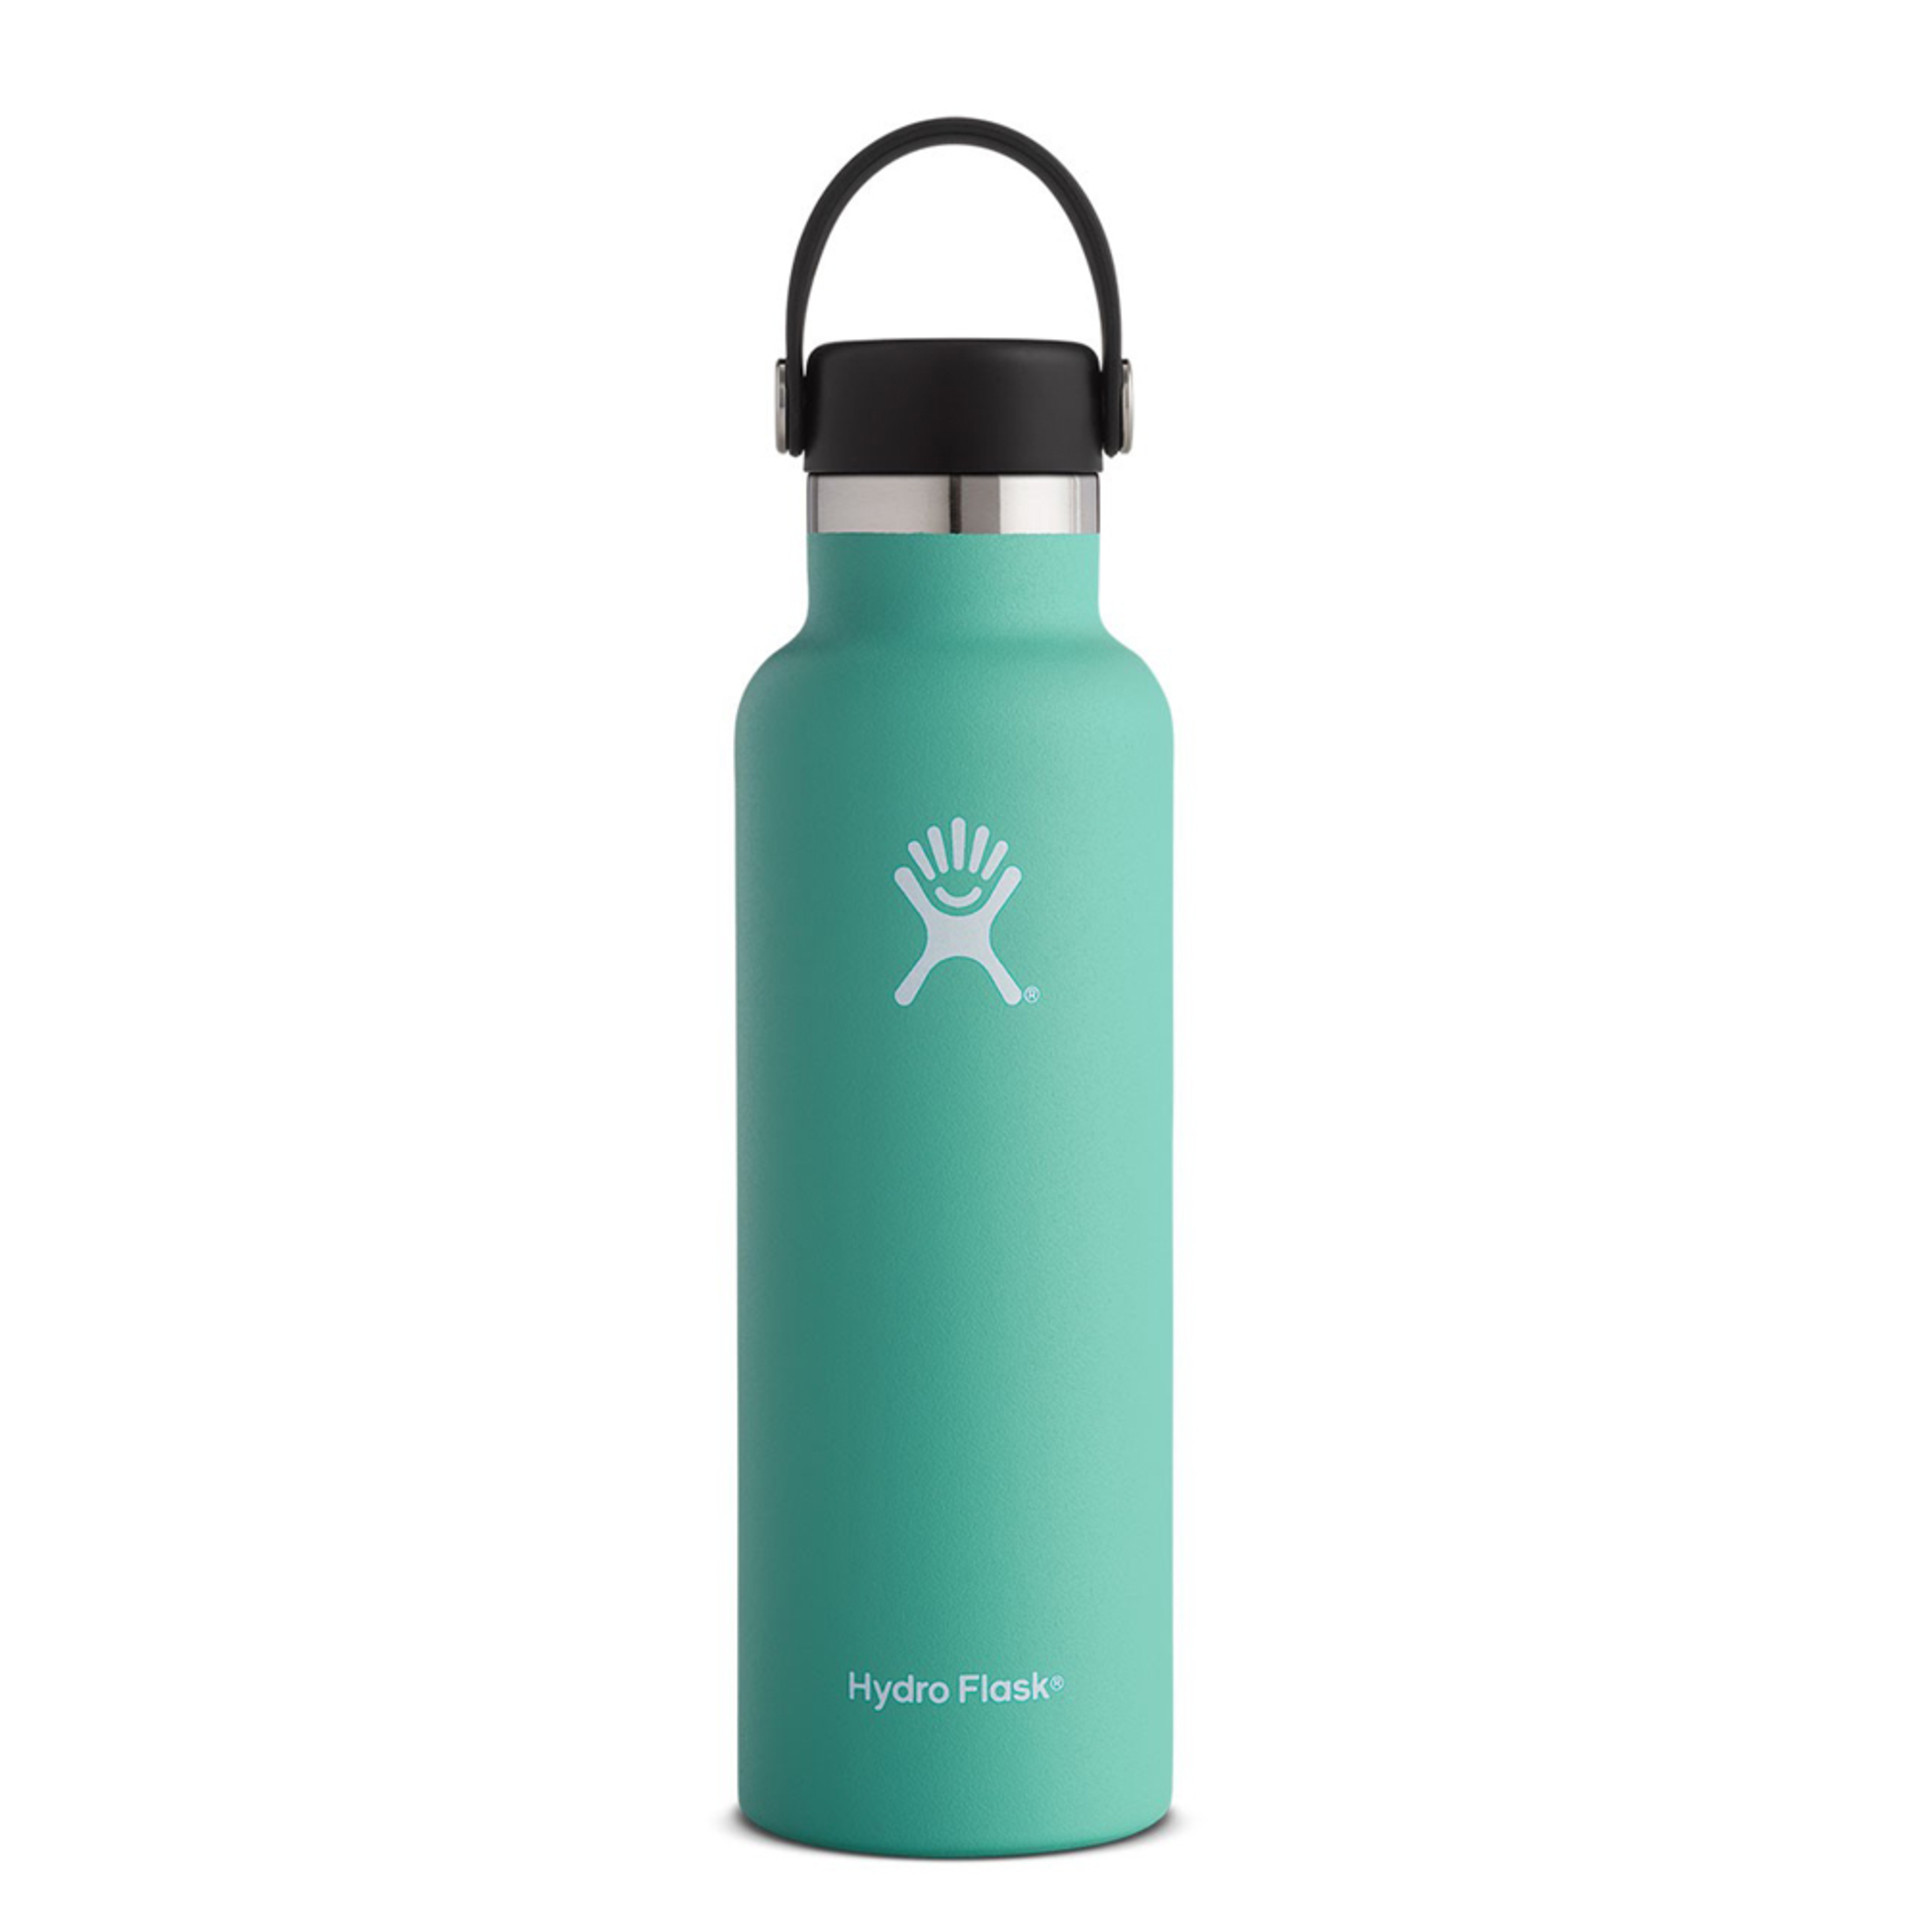 Hydro Flask Water Bottle Mint